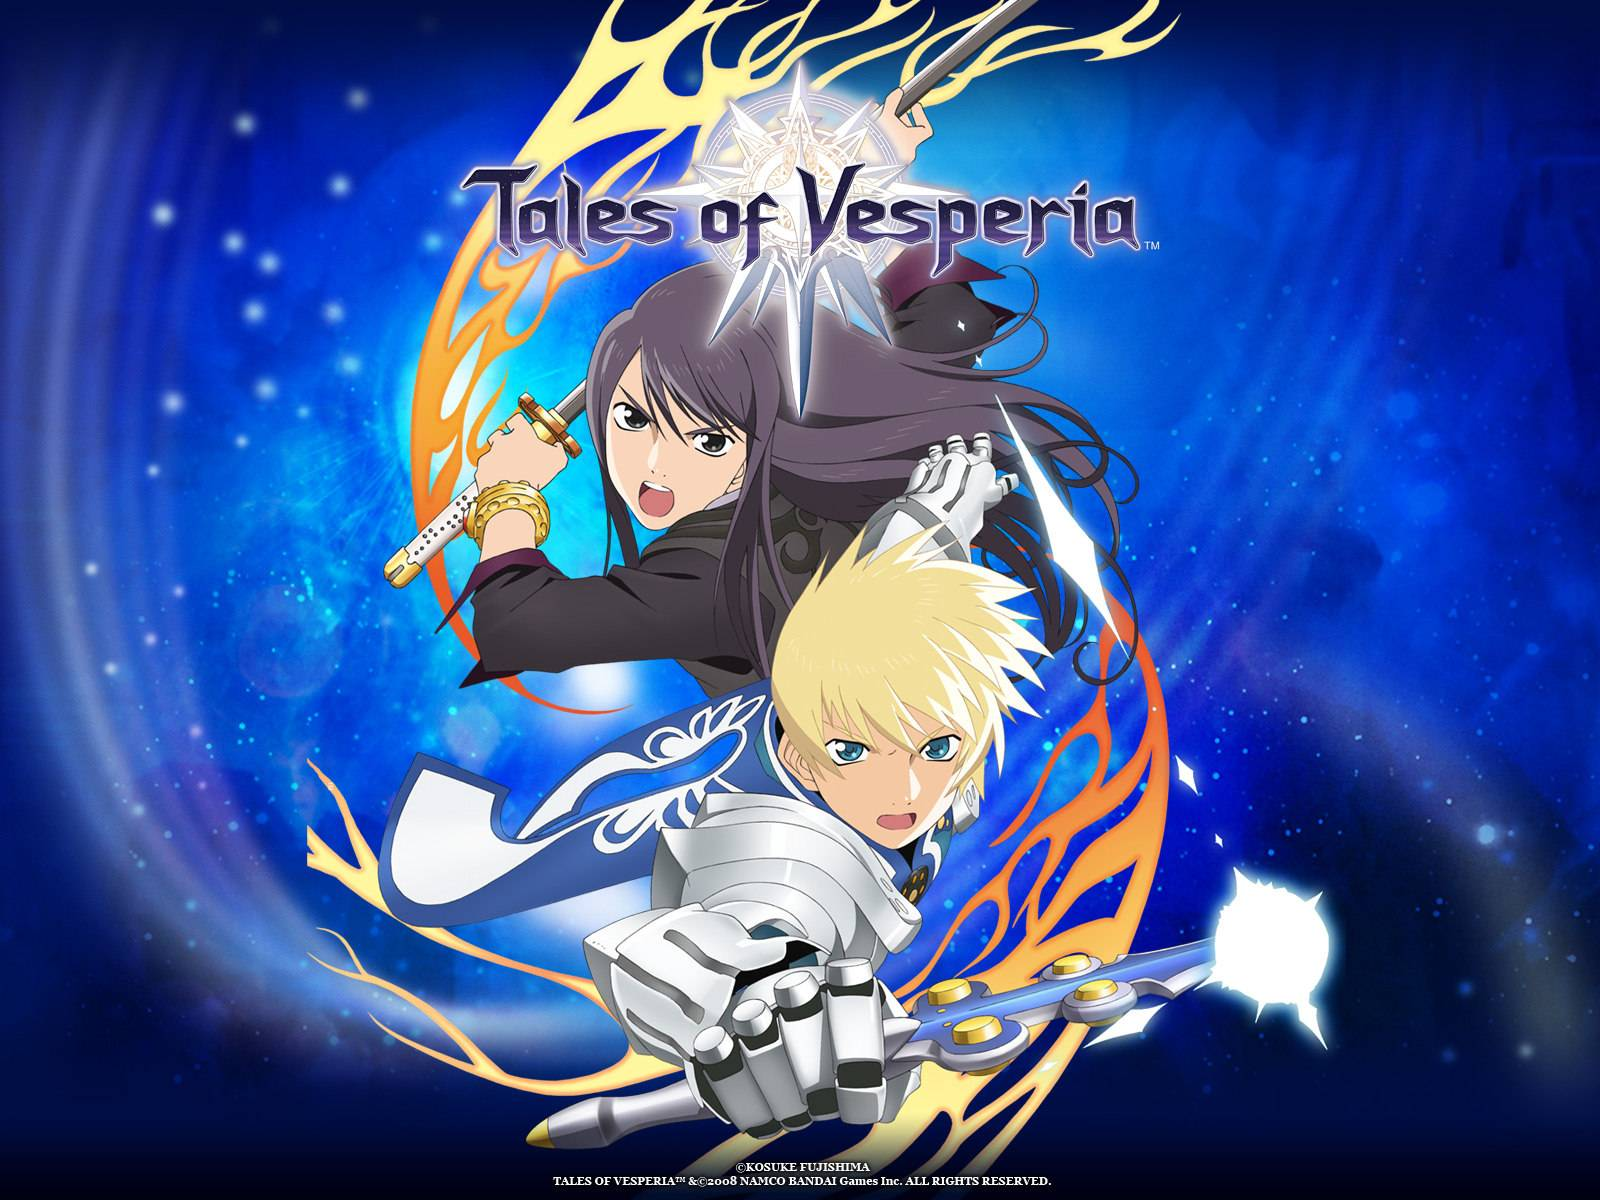 Yuri and Flynn Cover   Tales of Vesperia Wallpaper 1600x1200